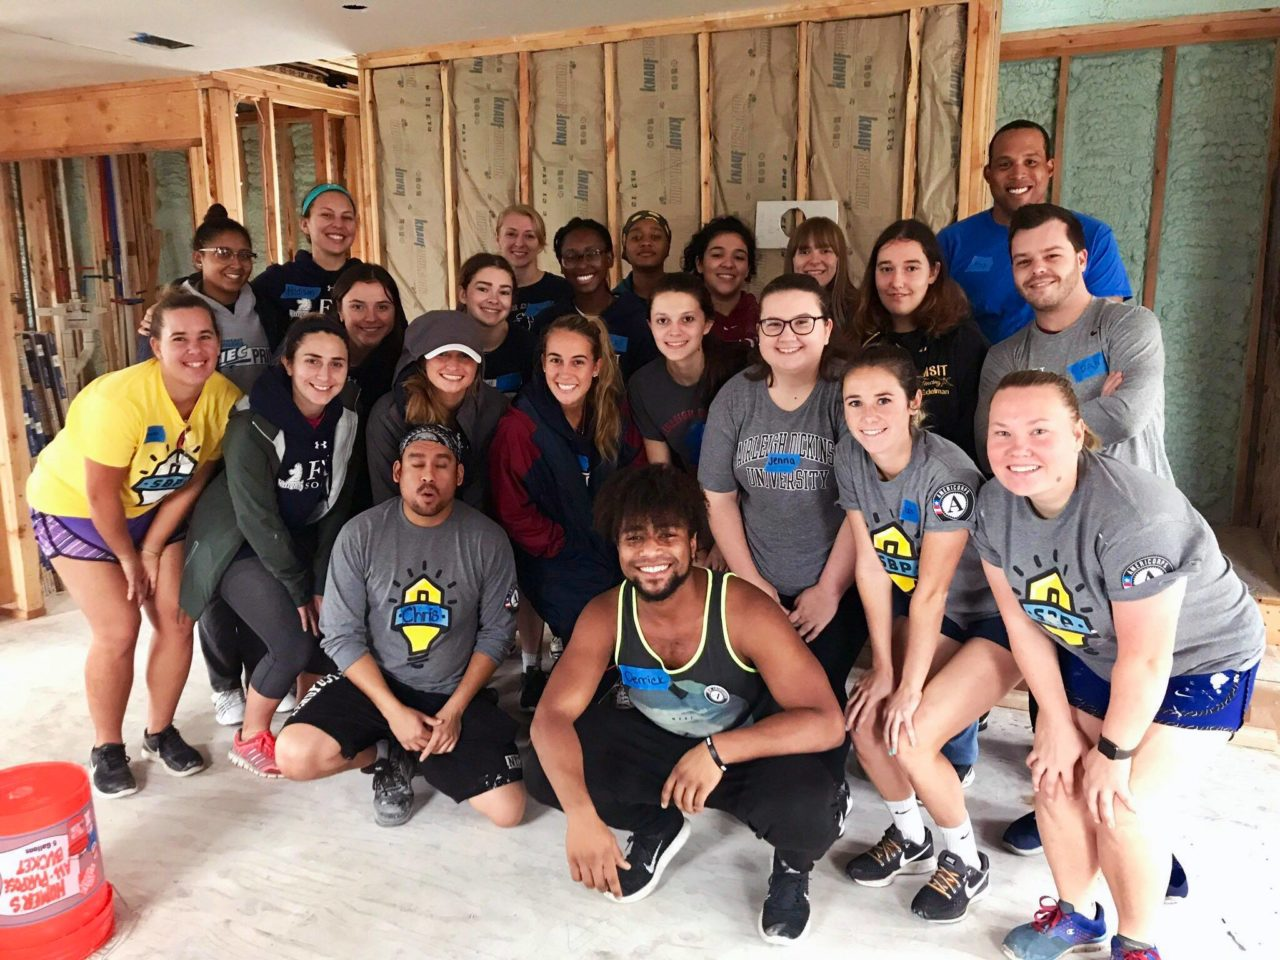 Knights bowling, fencing and softball help rebuild homes